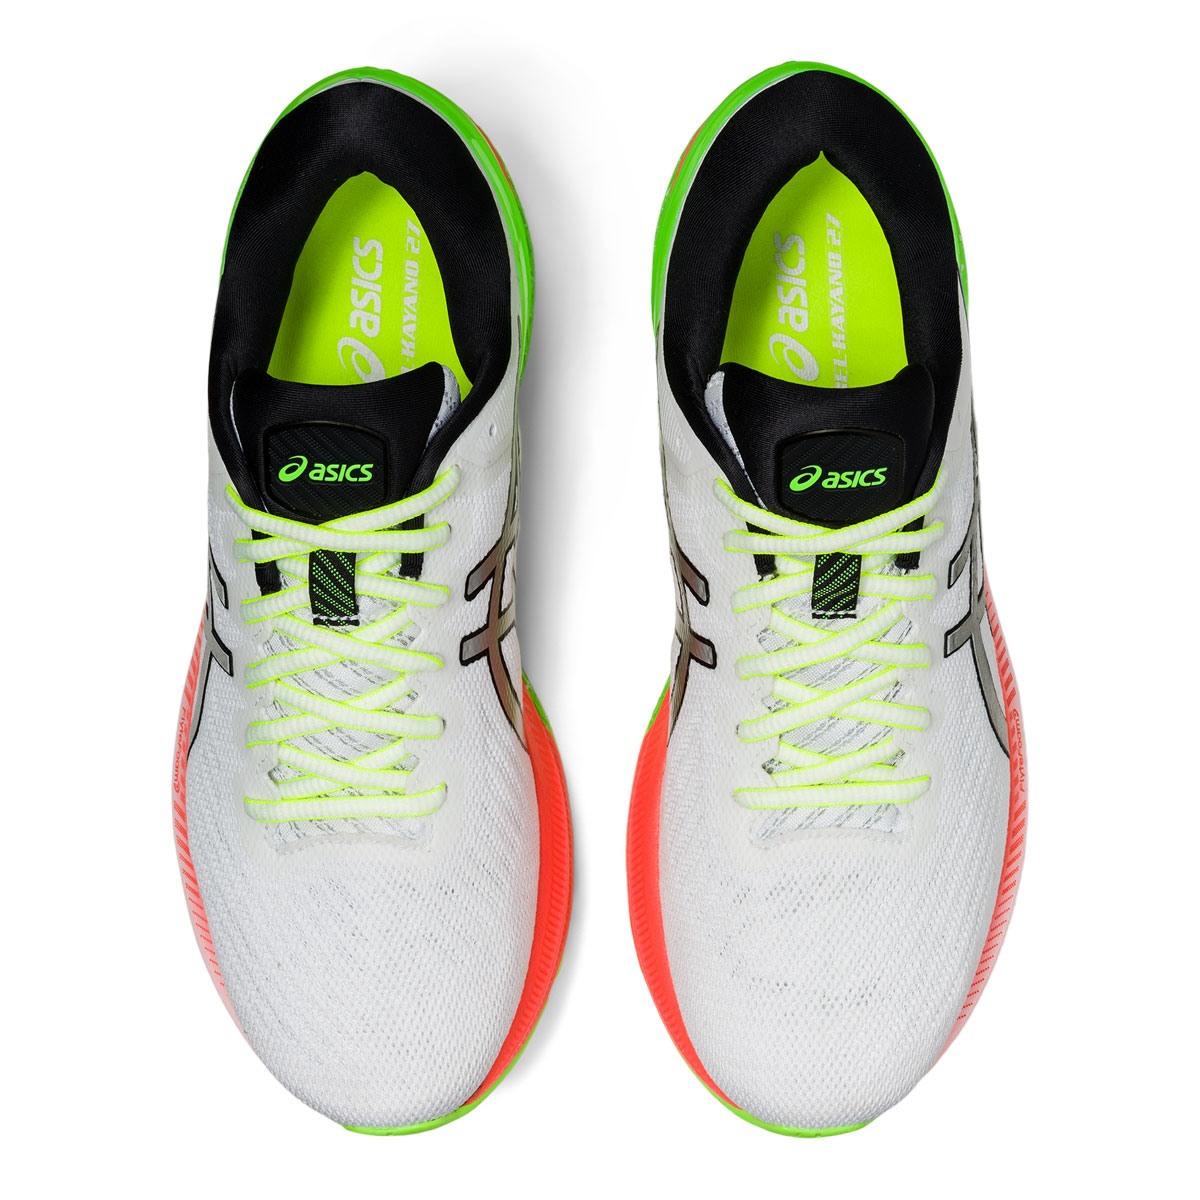 Men's Asics GEL-Kayano 27 Lite-Show Running Shoe - Color: White/Pure Silv (Regular Width) - Size: 6, White/Pure Silver, large, image 6